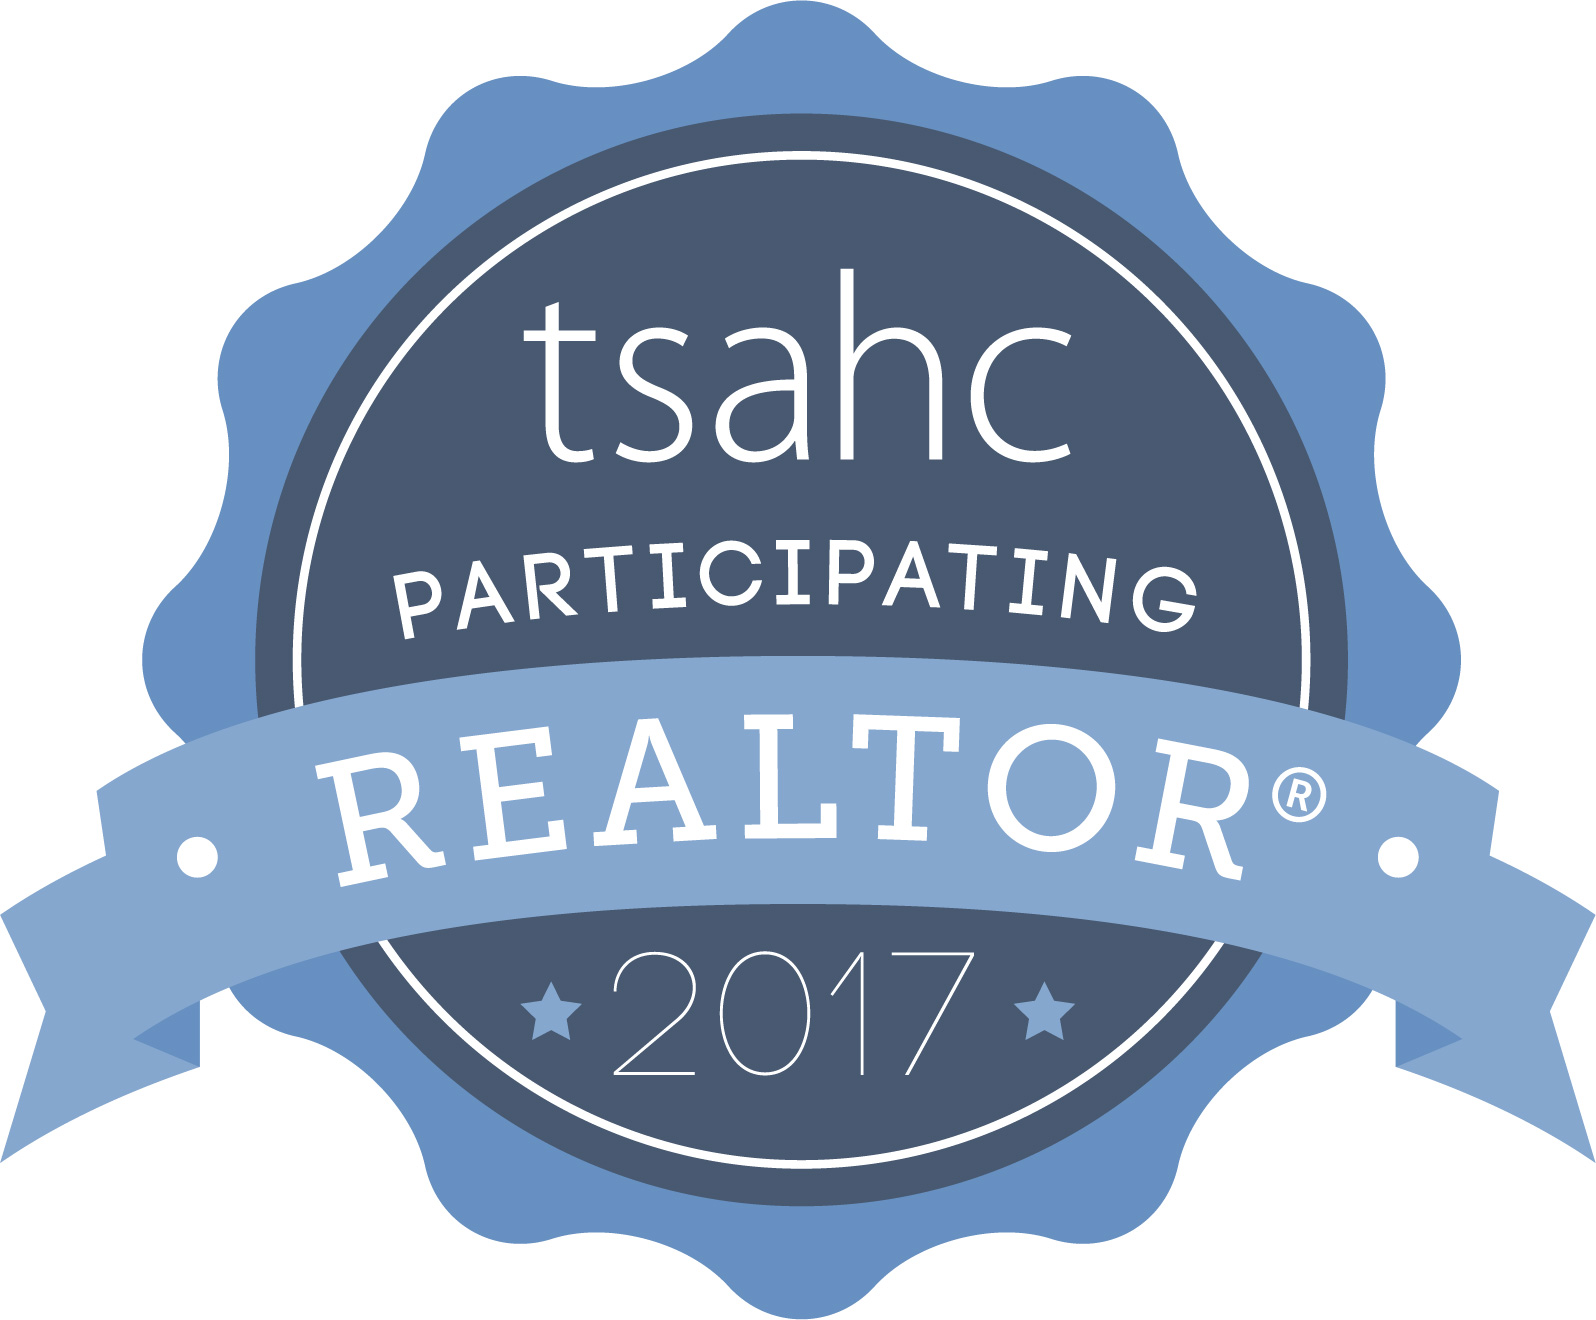 participating realtor badge texas state affordable housing corporation tsahc. Black Bedroom Furniture Sets. Home Design Ideas